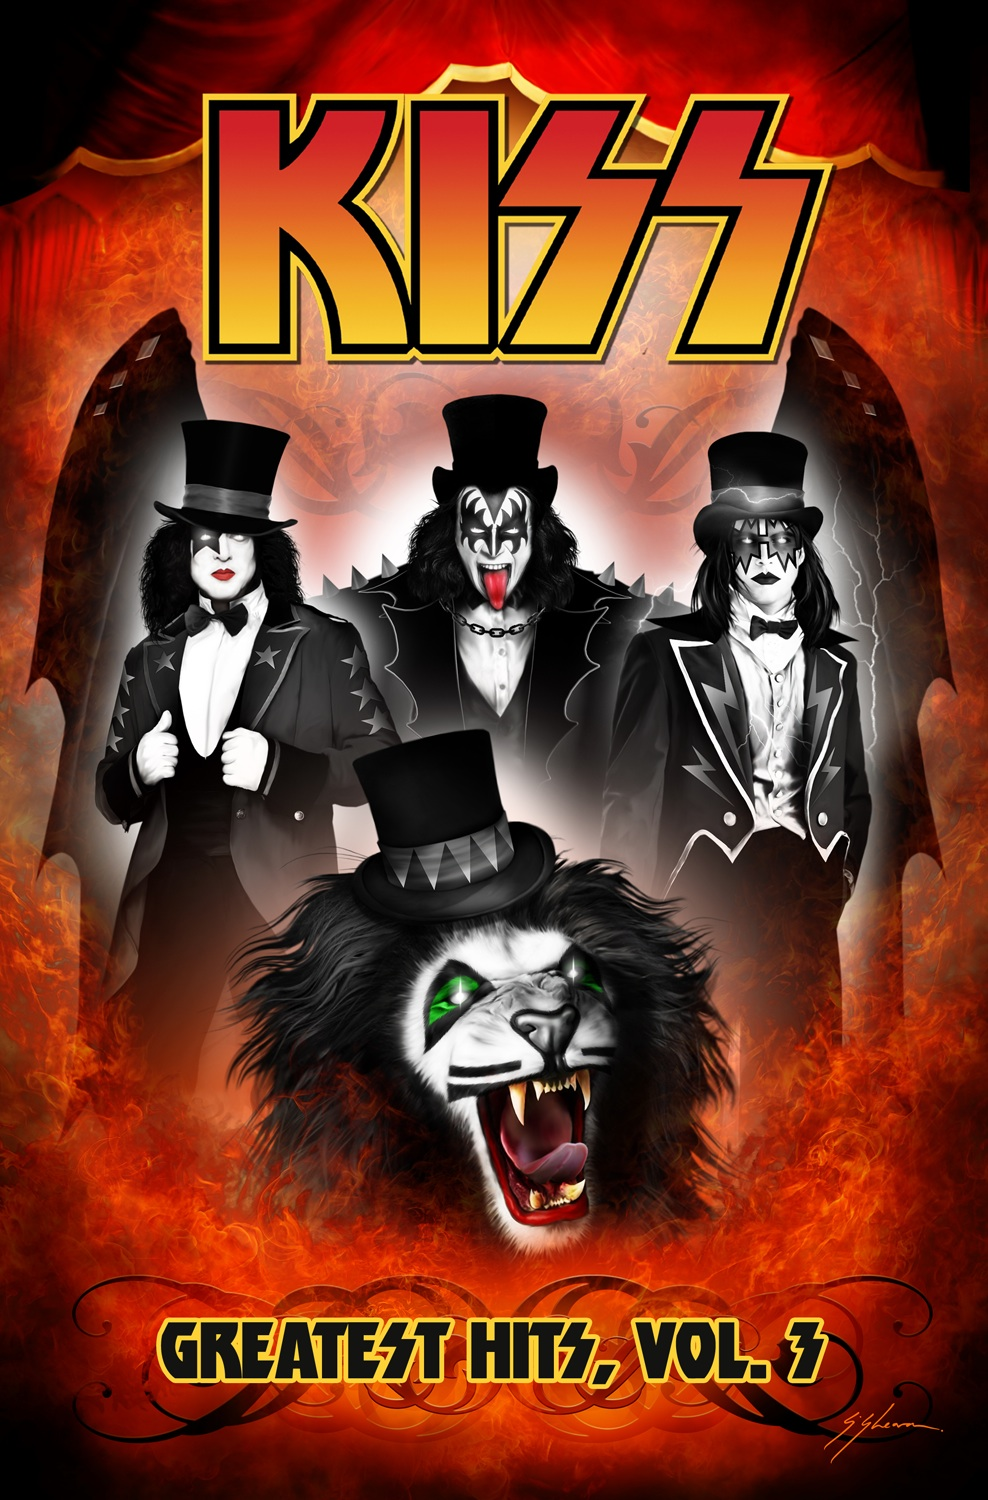 Kiss Greatest Hits Vol 3